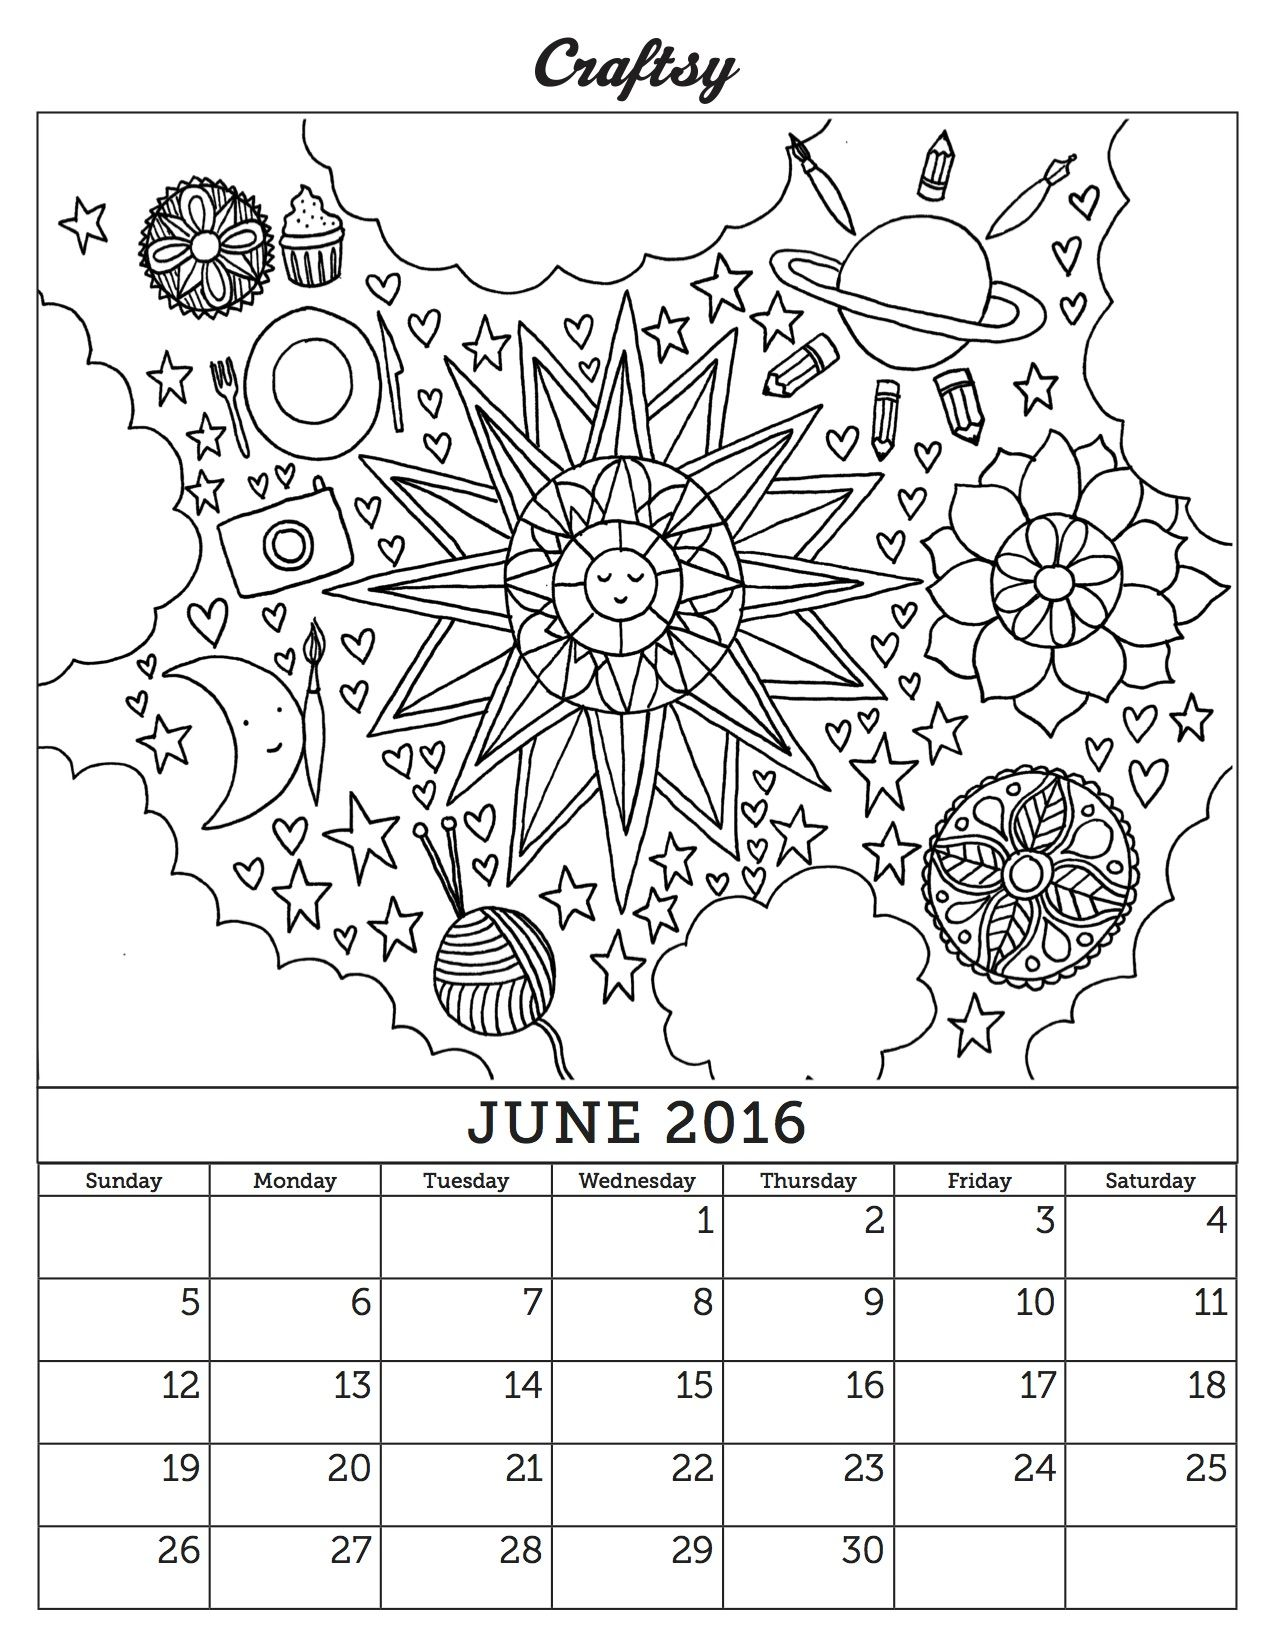 Our latest coloring book calendar